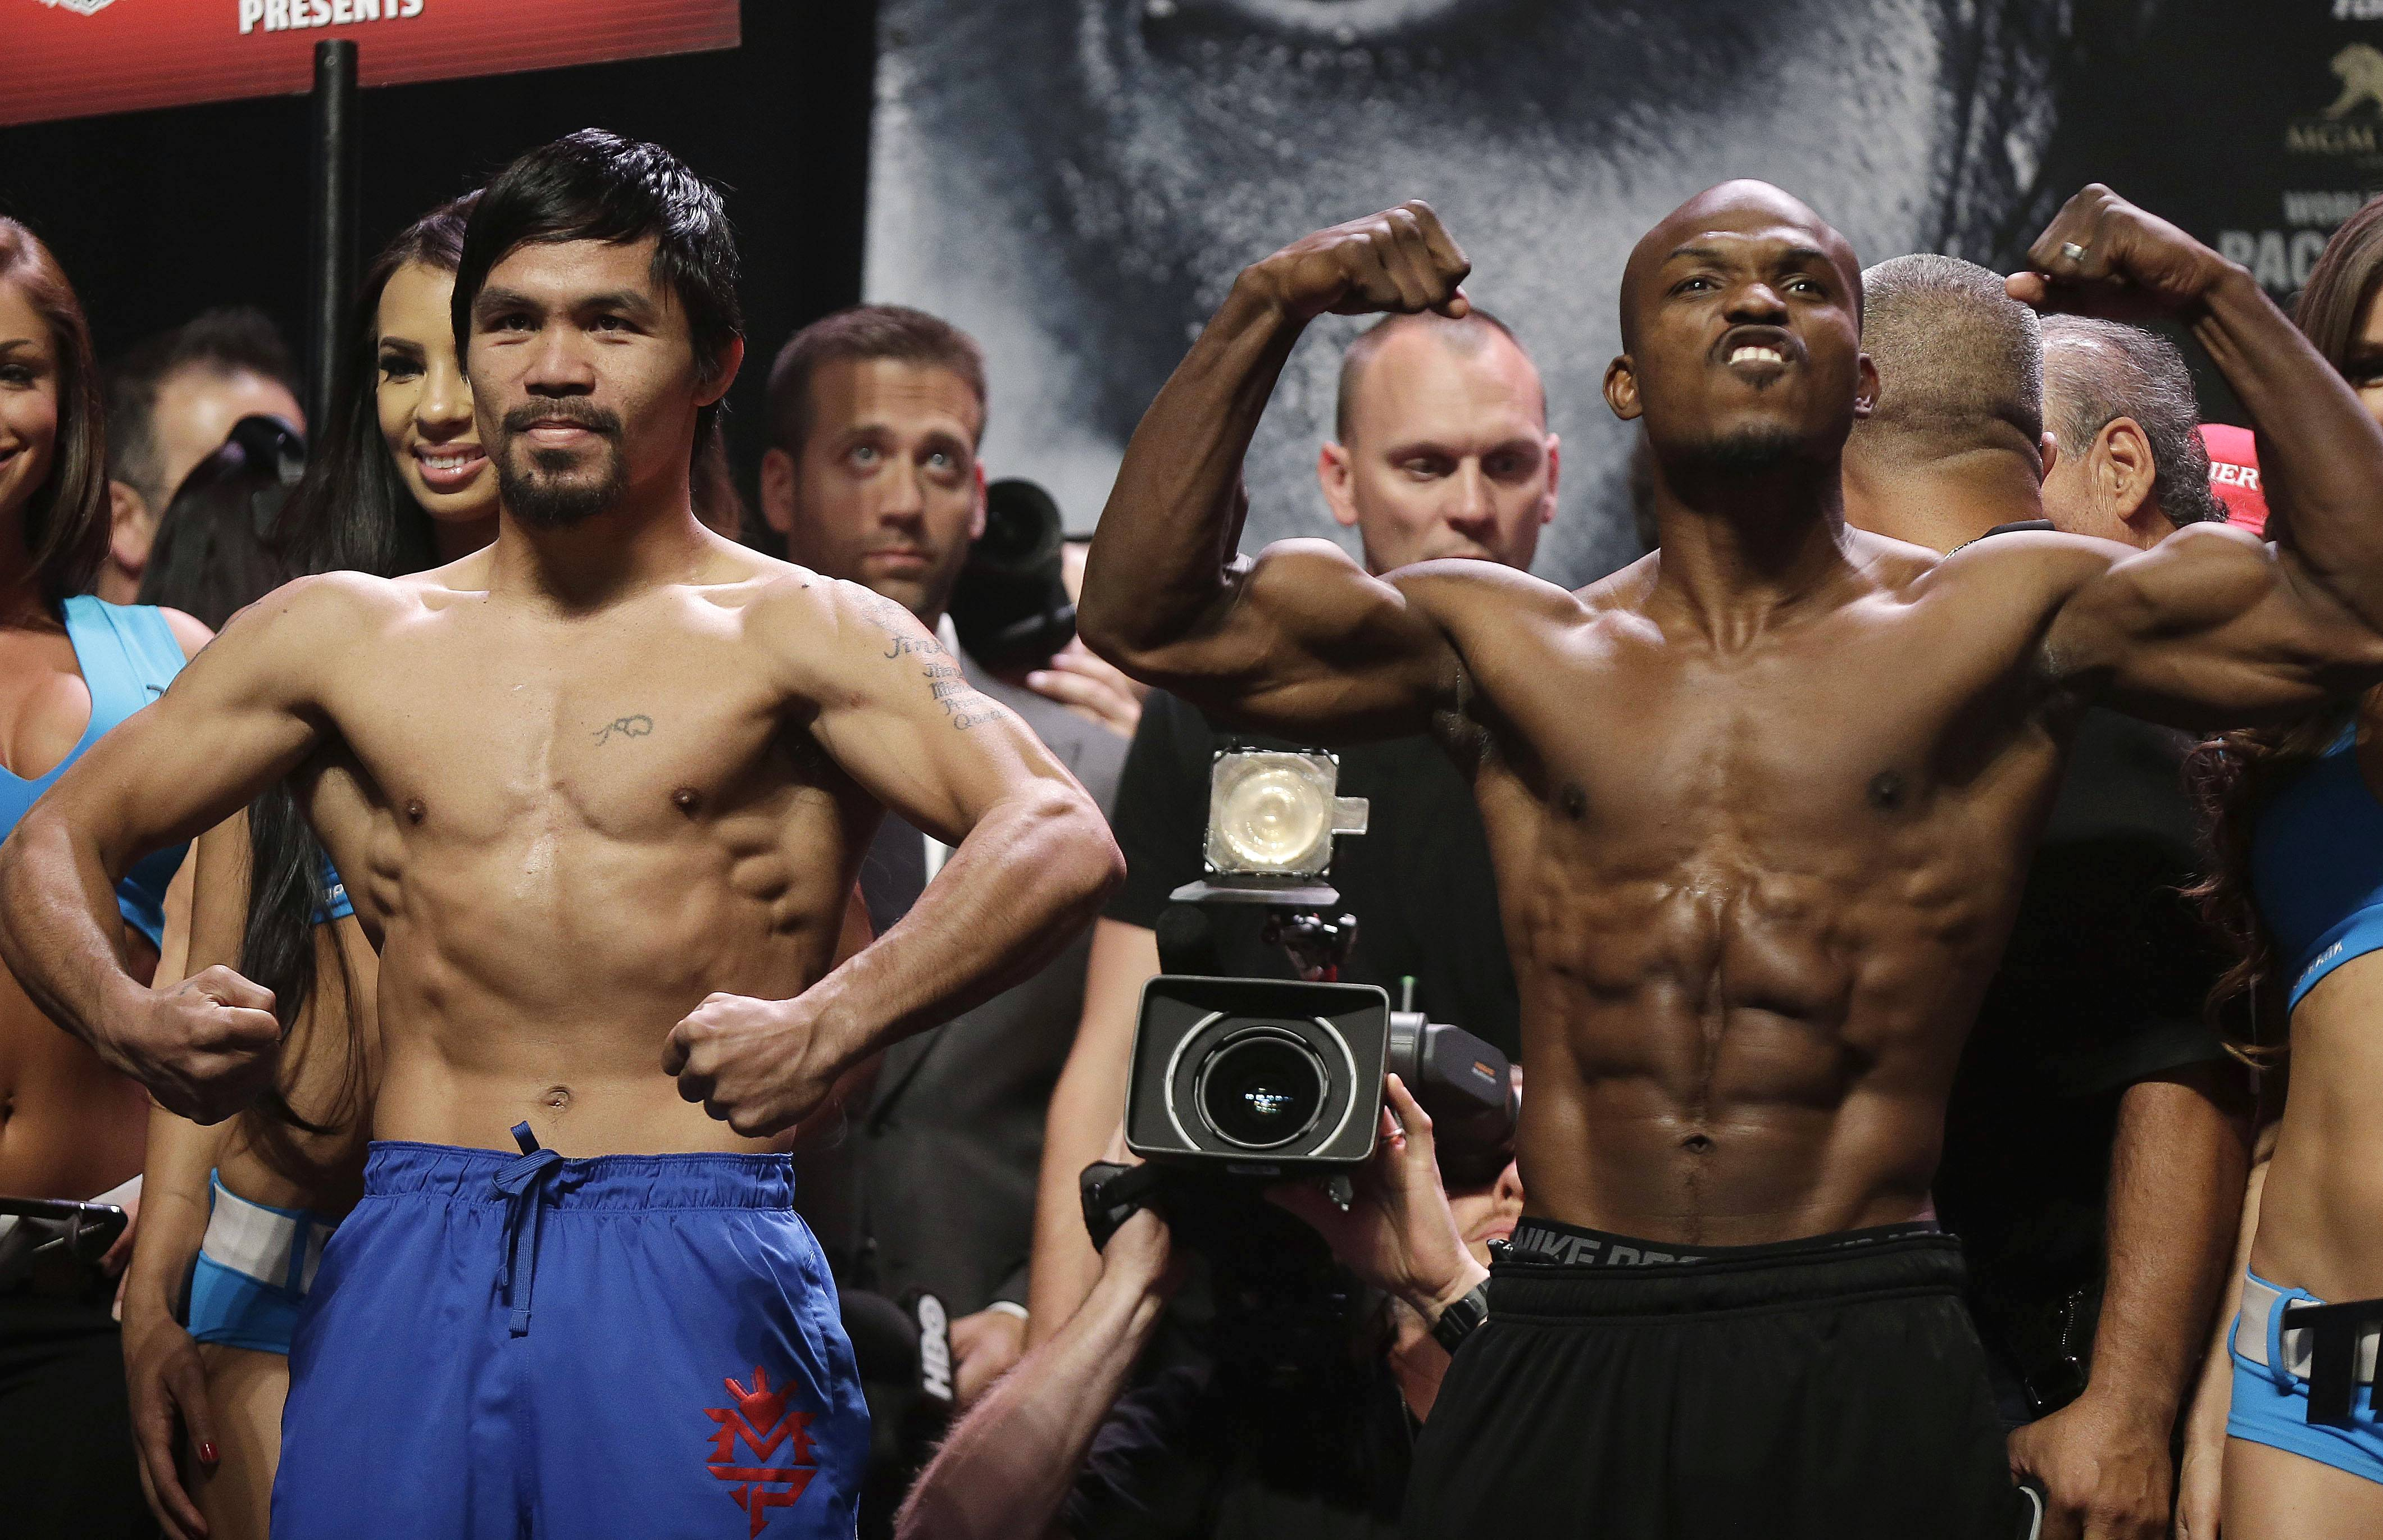 Manny Pacquiao, left, and Timothy Bradley pose for photos following after the weigh-in for Saturday's WBO welterweight championship boxing match, Friday, April 11, 2014, in Las Vegas. (AP Photo/Isaac Brekken)